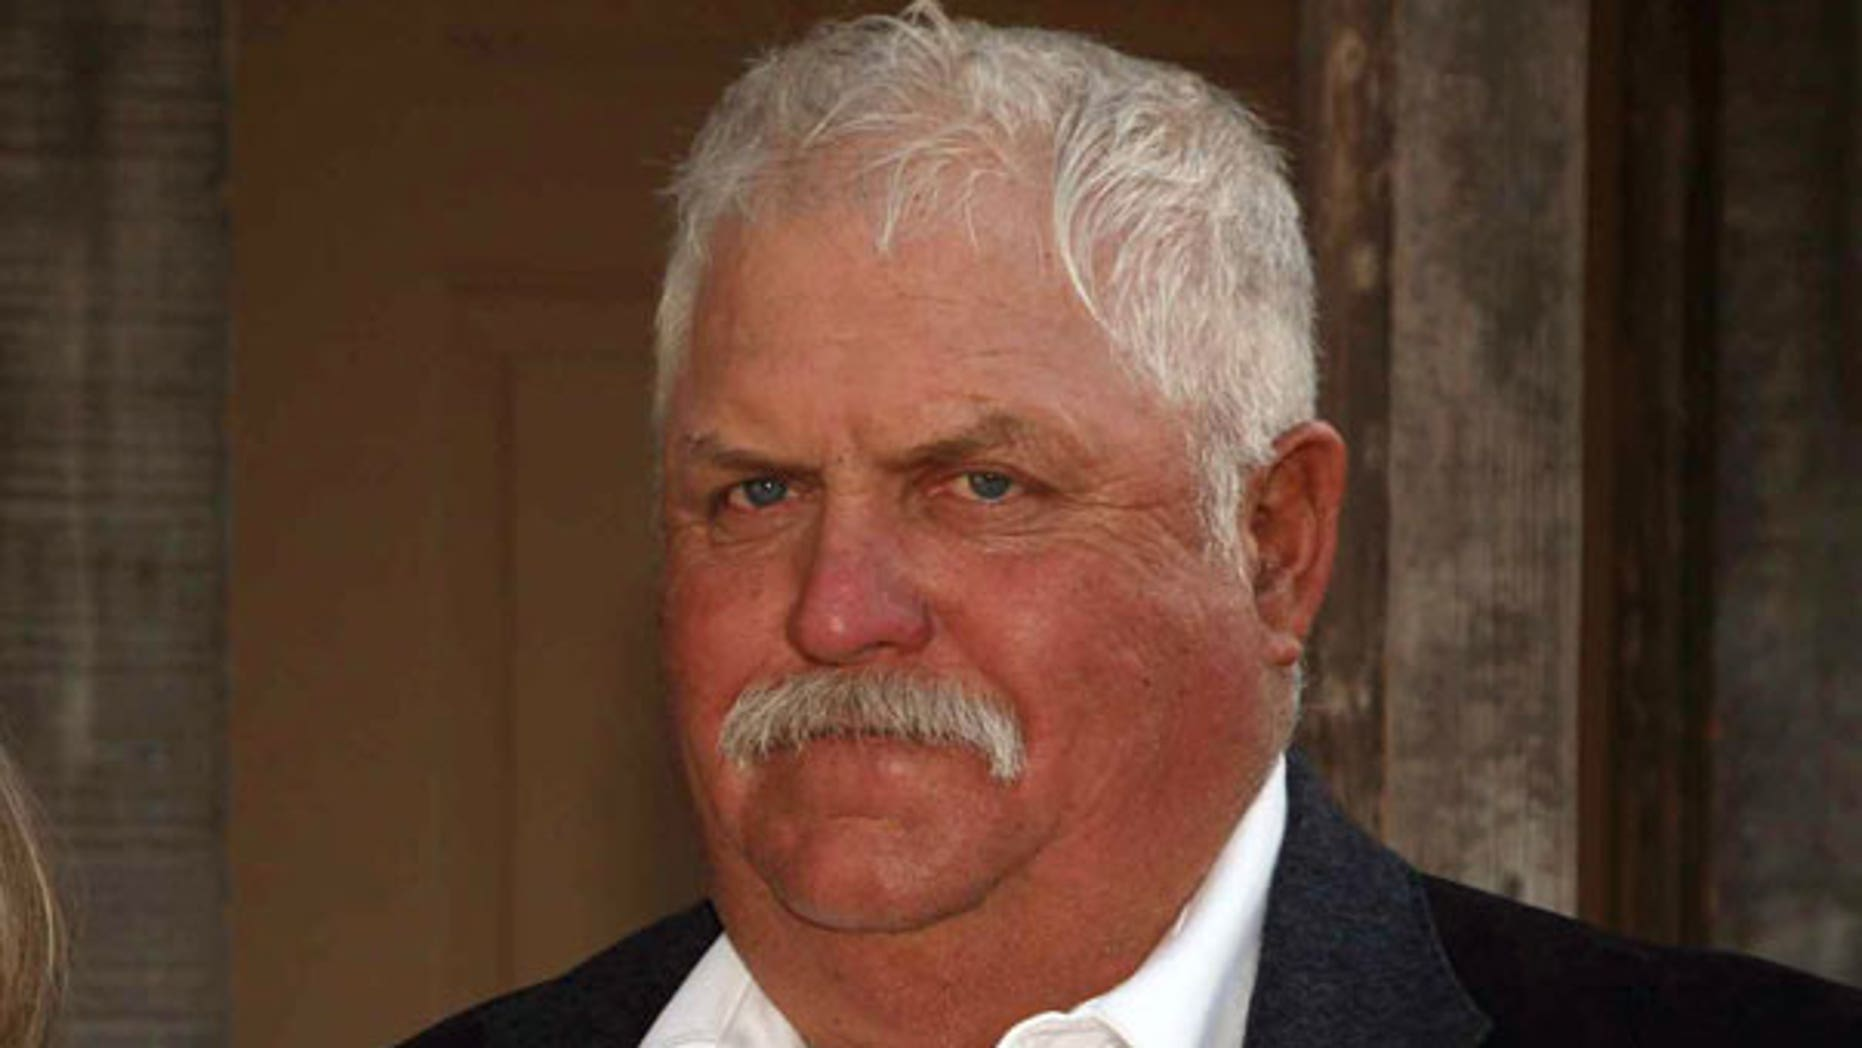 Arizona rancher Robert Krentz, pictured here in 2008, was killed in March on his own property 35 miles outside of the border town of Douglas, Ariz.  No arrests have been made.